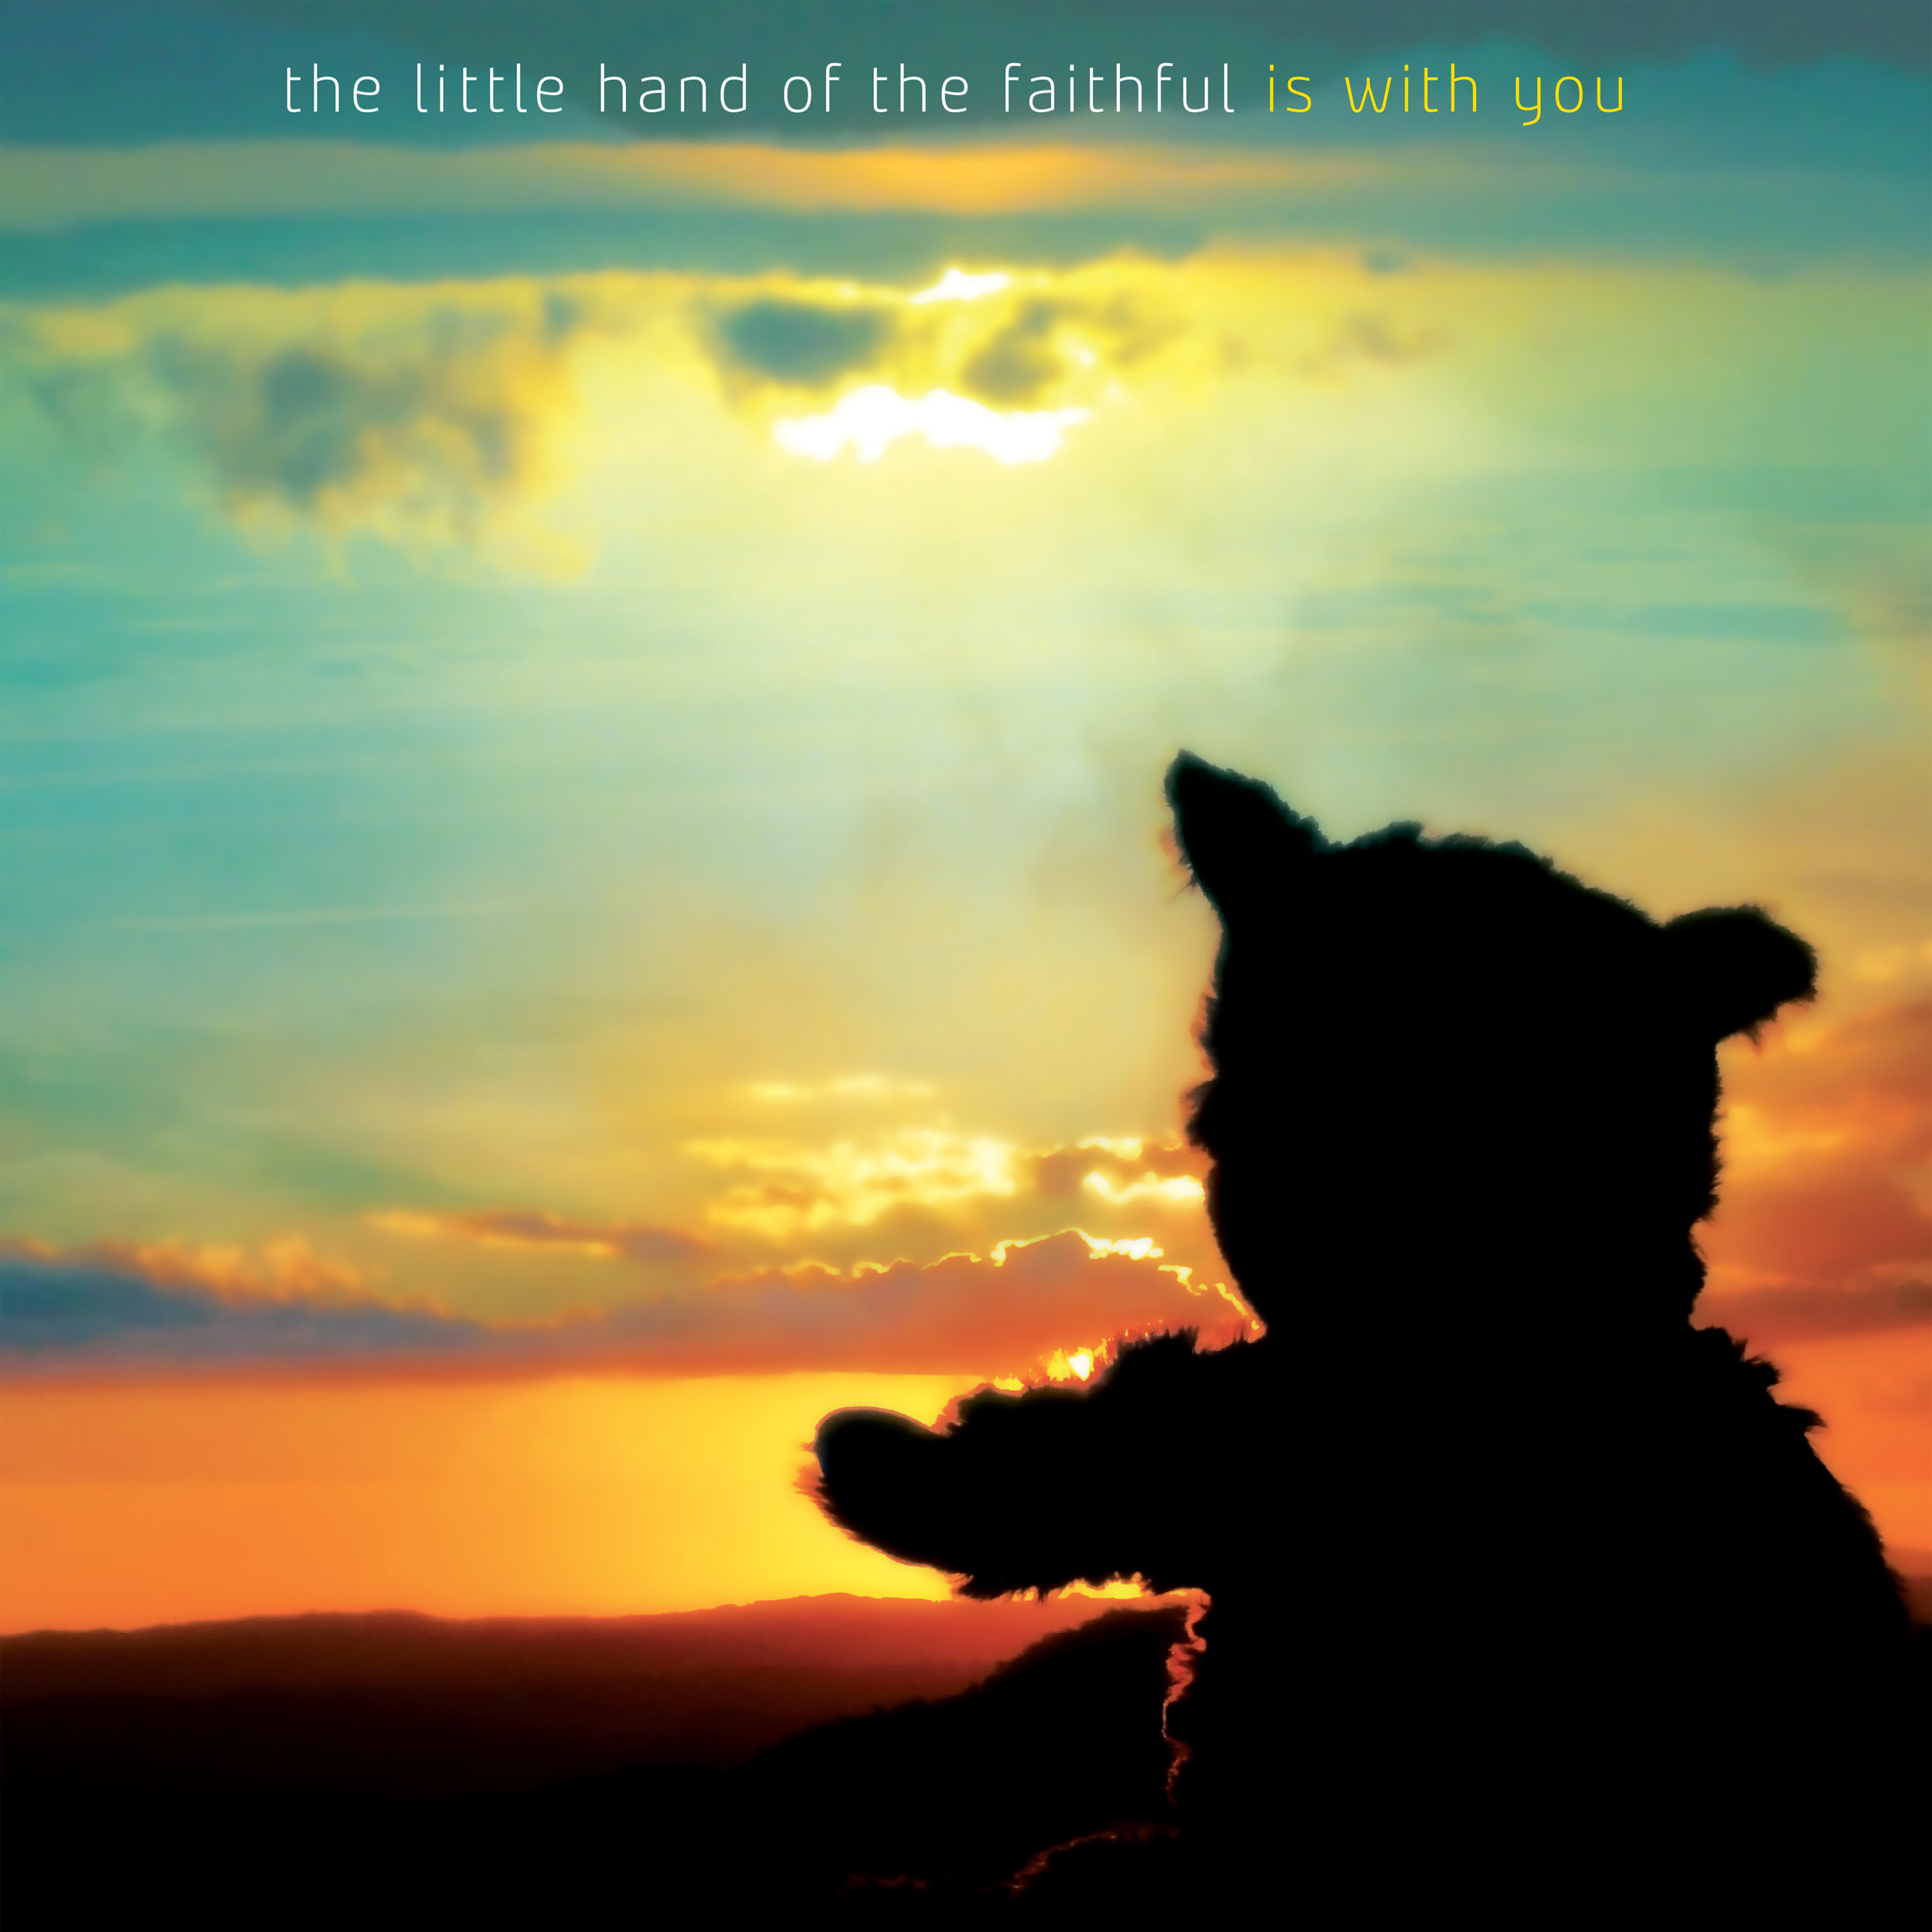 The little hand of the faithful - is with you